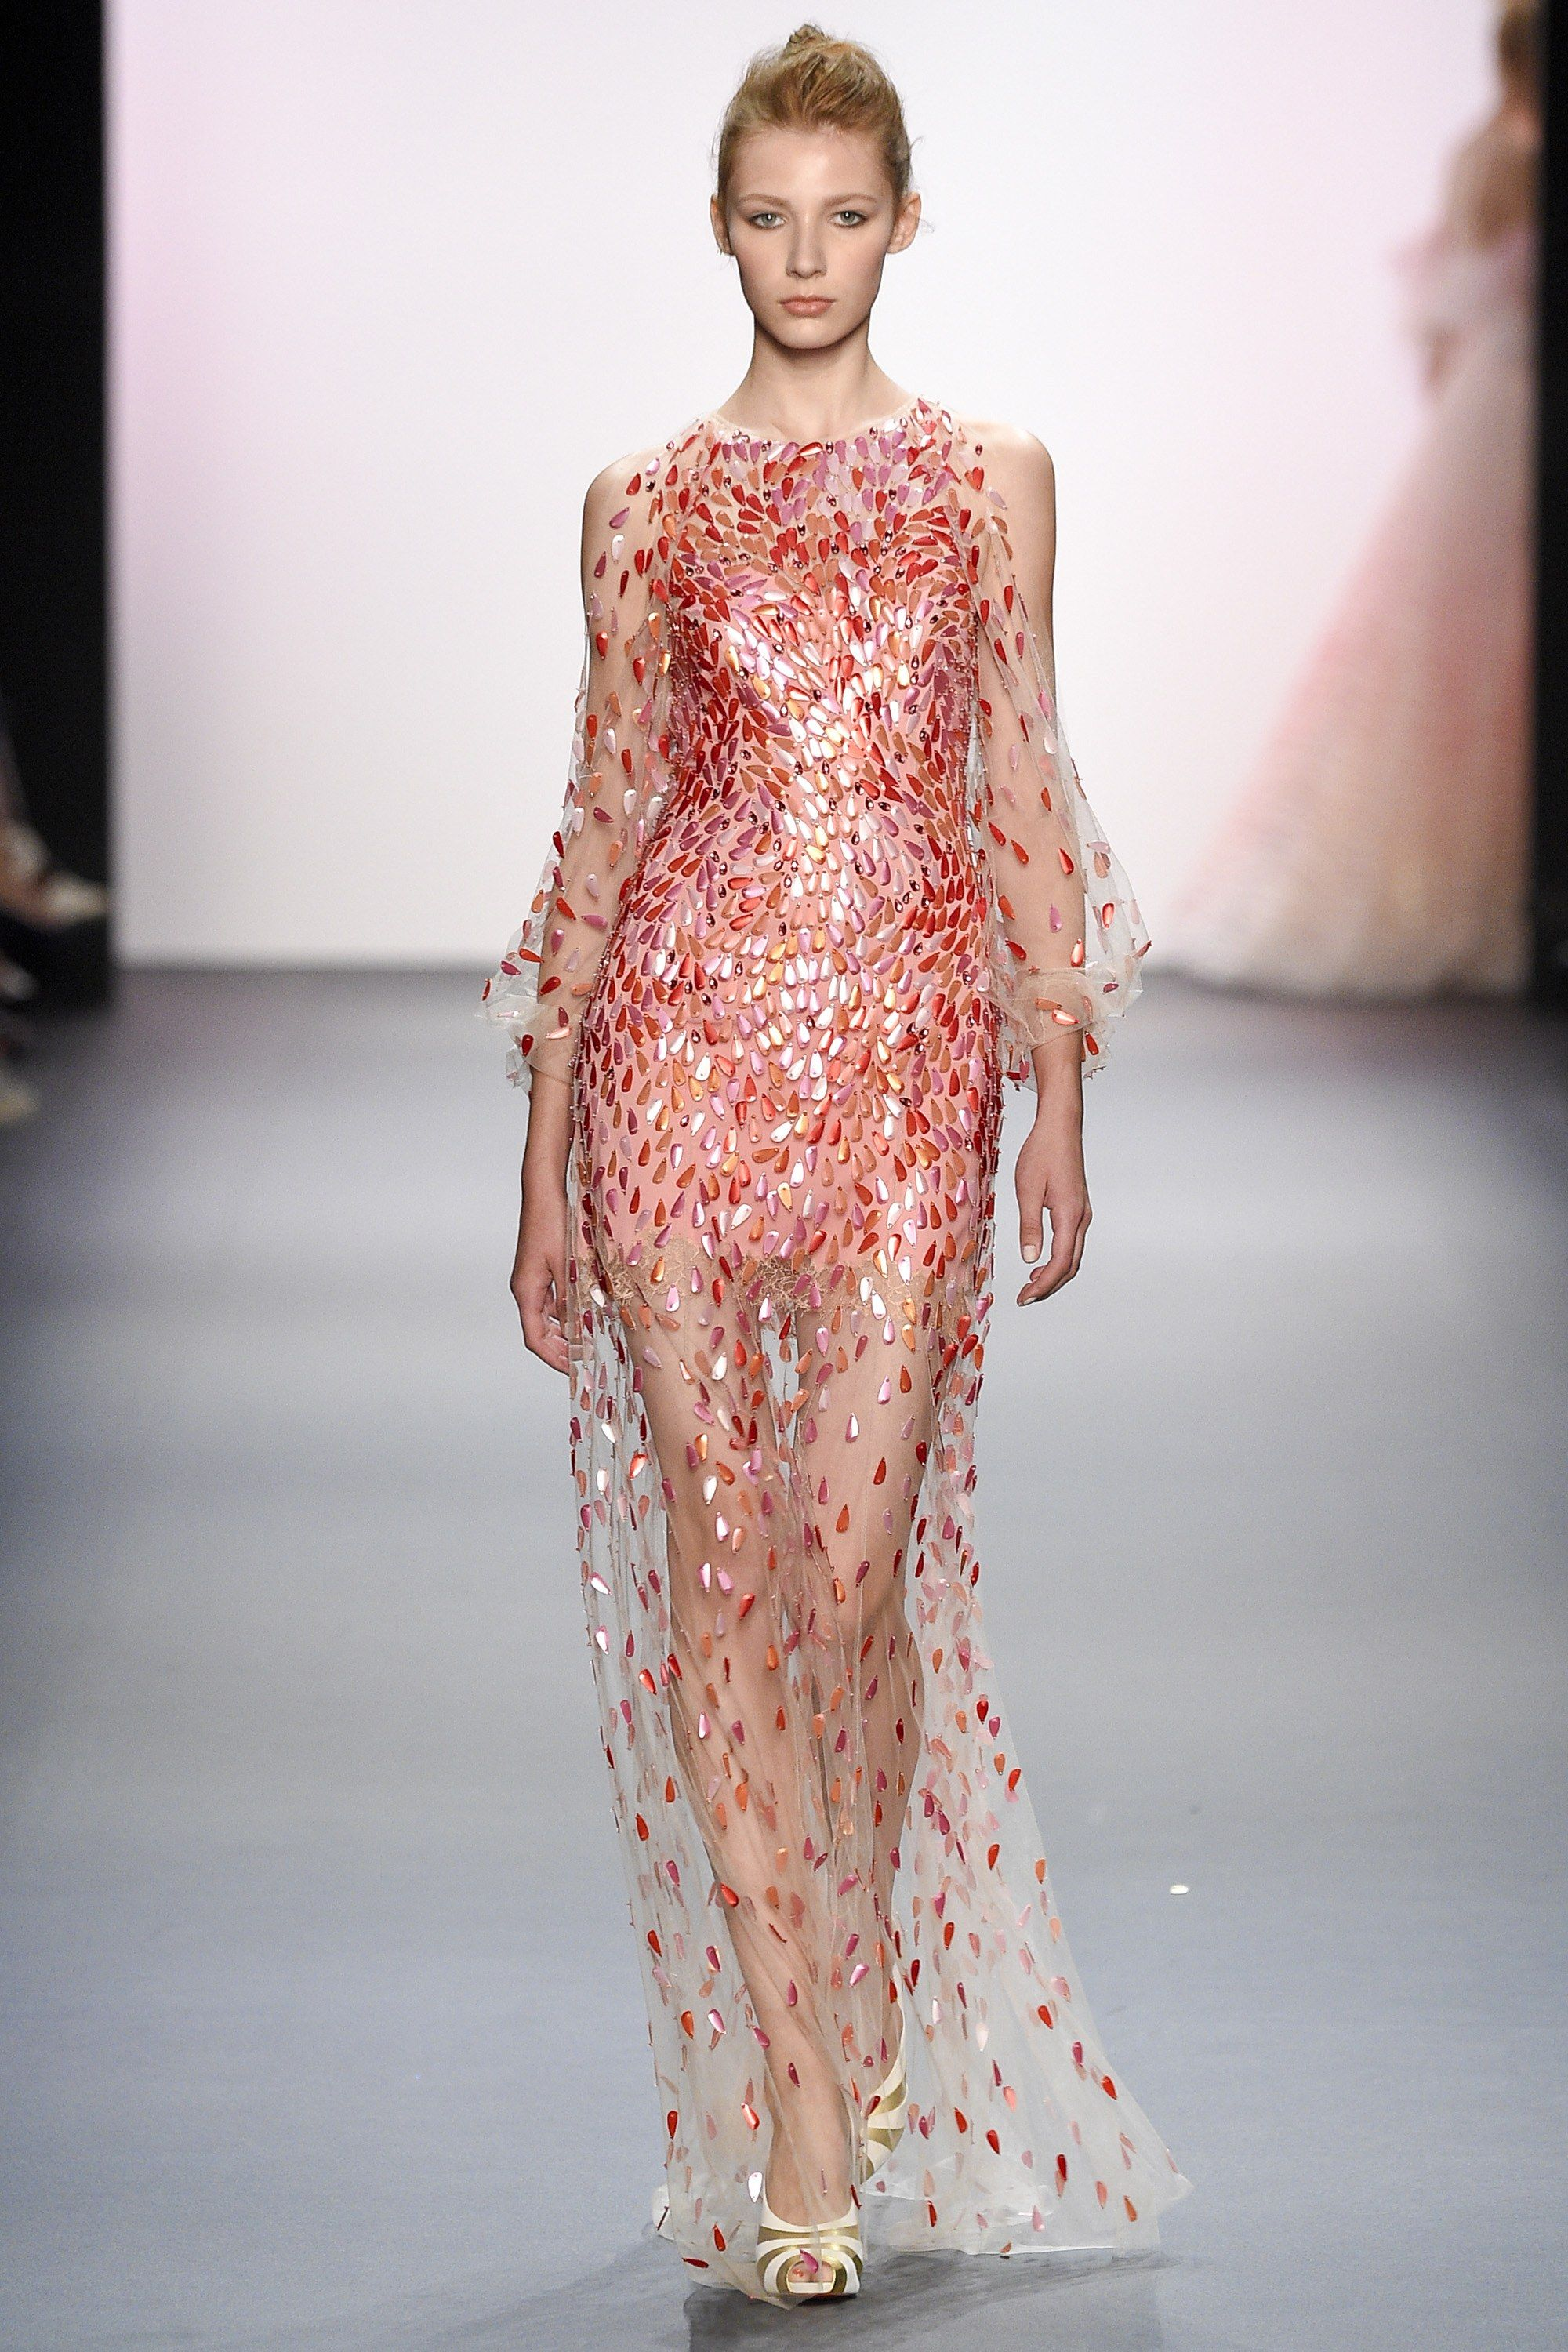 Jenny Packham | Haute couture by Justine Thomas | Pinterest | Moda ...